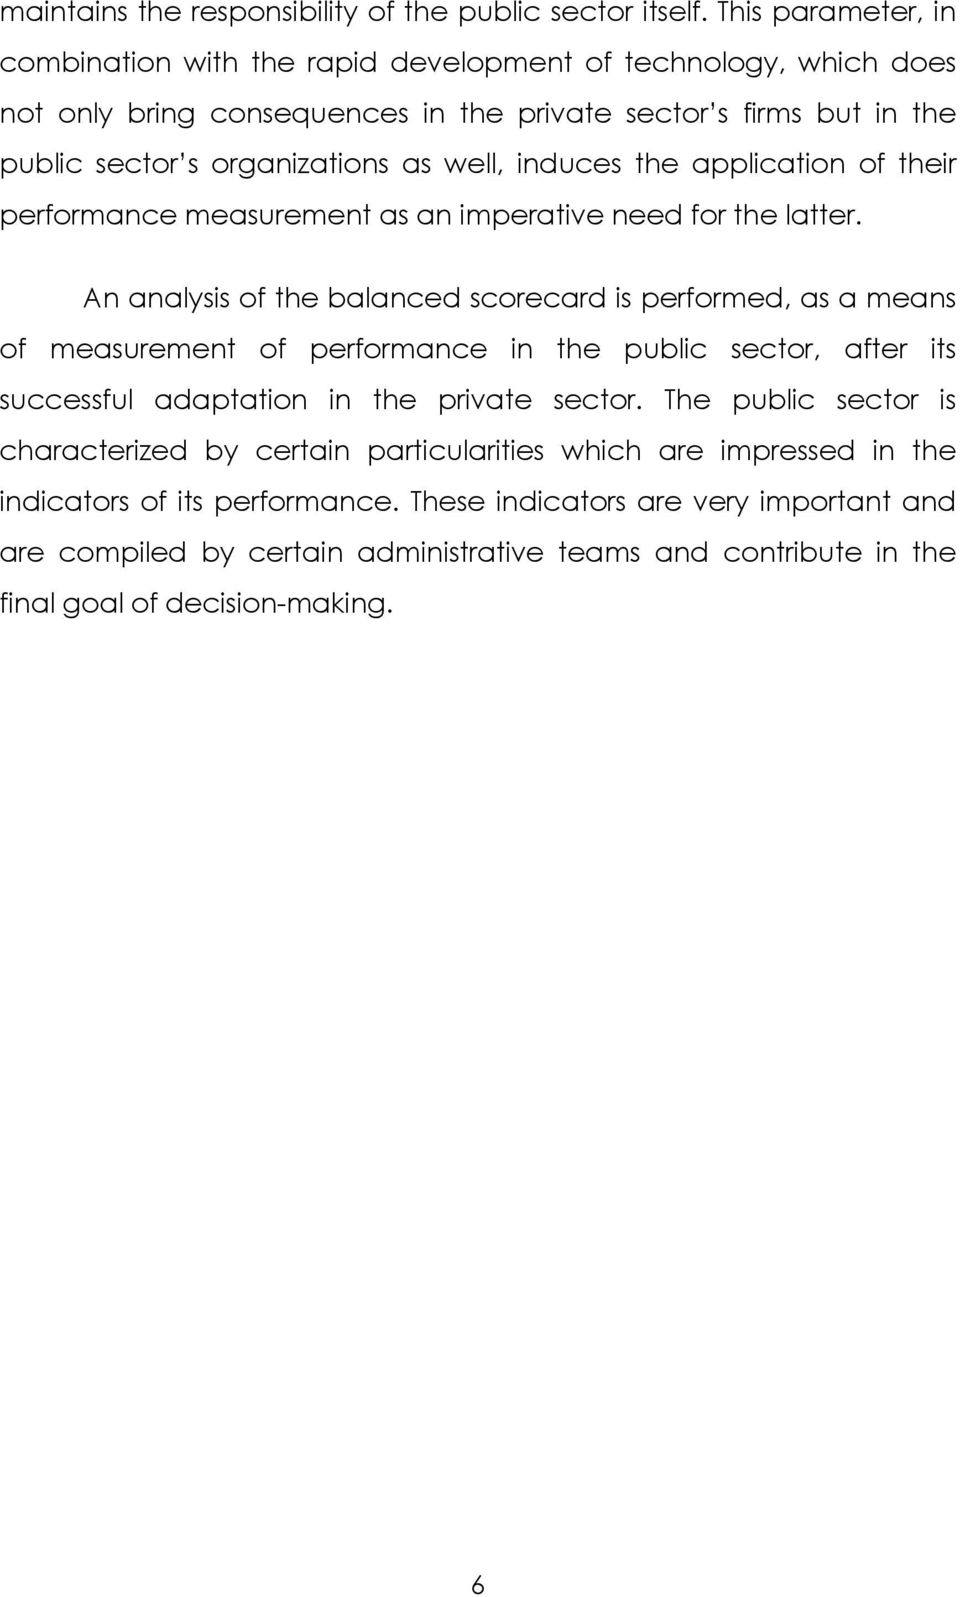 induces the application of their performance measurement as an imperative need for the latter.